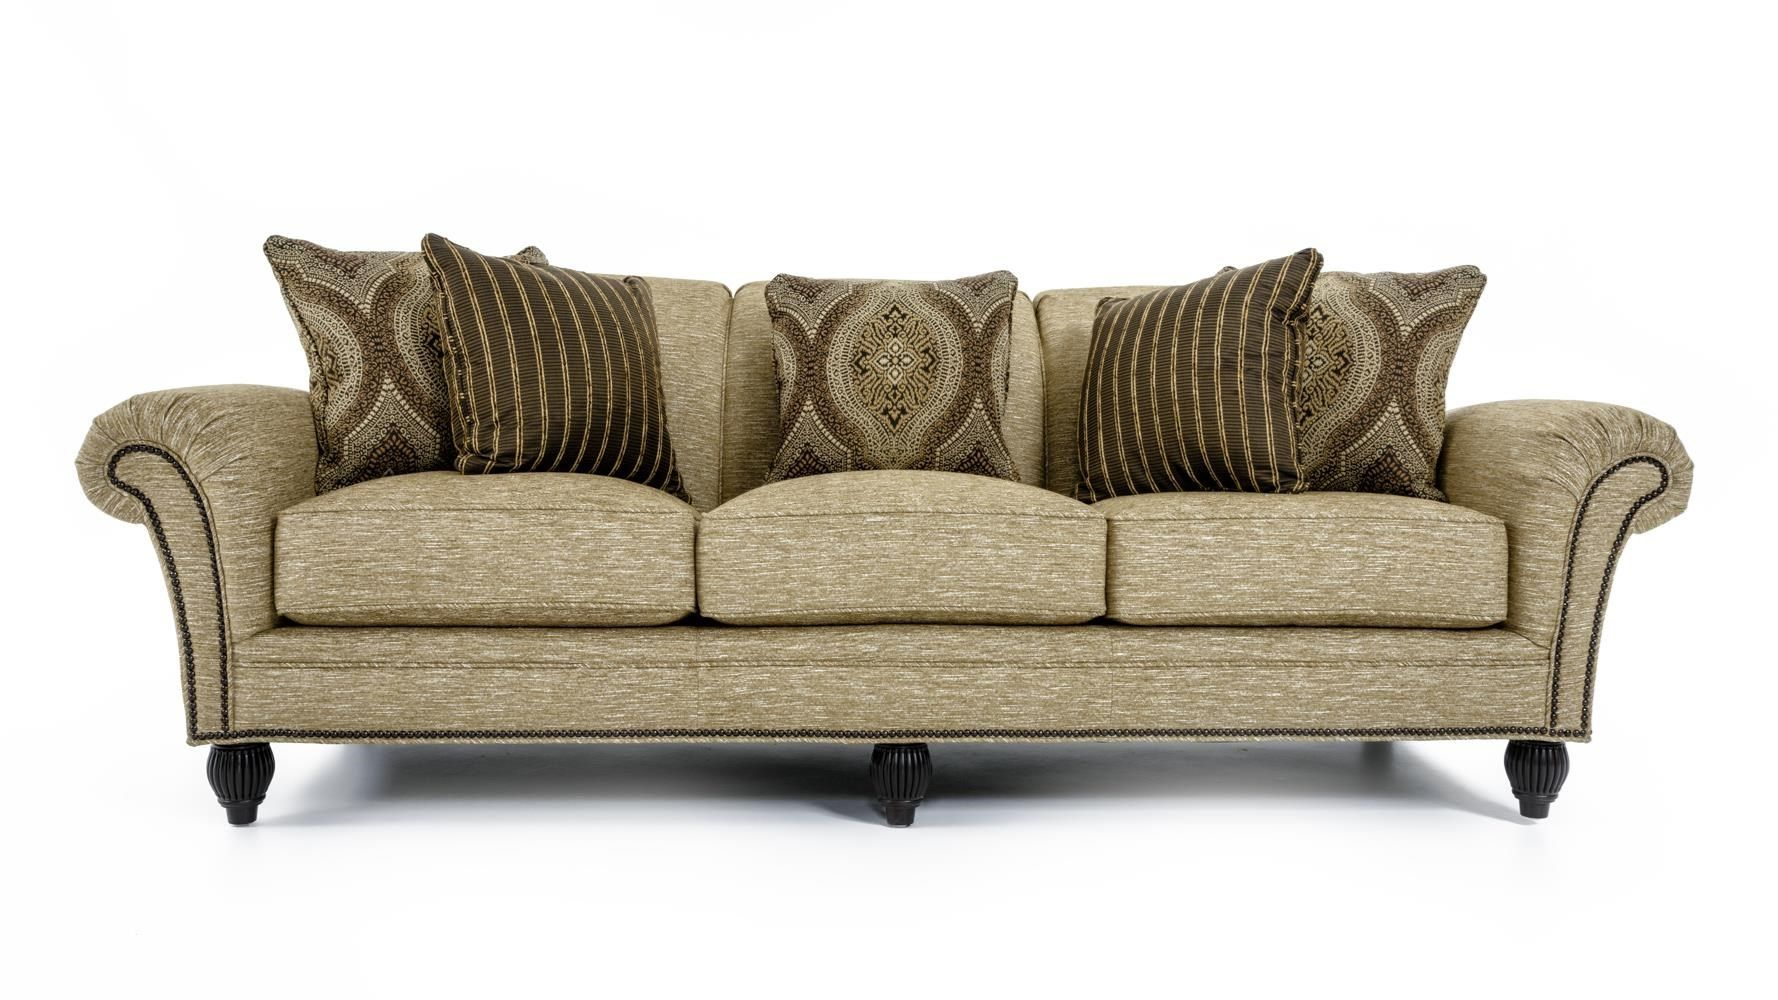 Royal Kahala Edgewater Rolled Arm Sofa With Nailhead Trim By Tommy Bahama Home At Baer S Furniture Tommy Bahama Home Rolled Arm Sofa Nailhead Trim